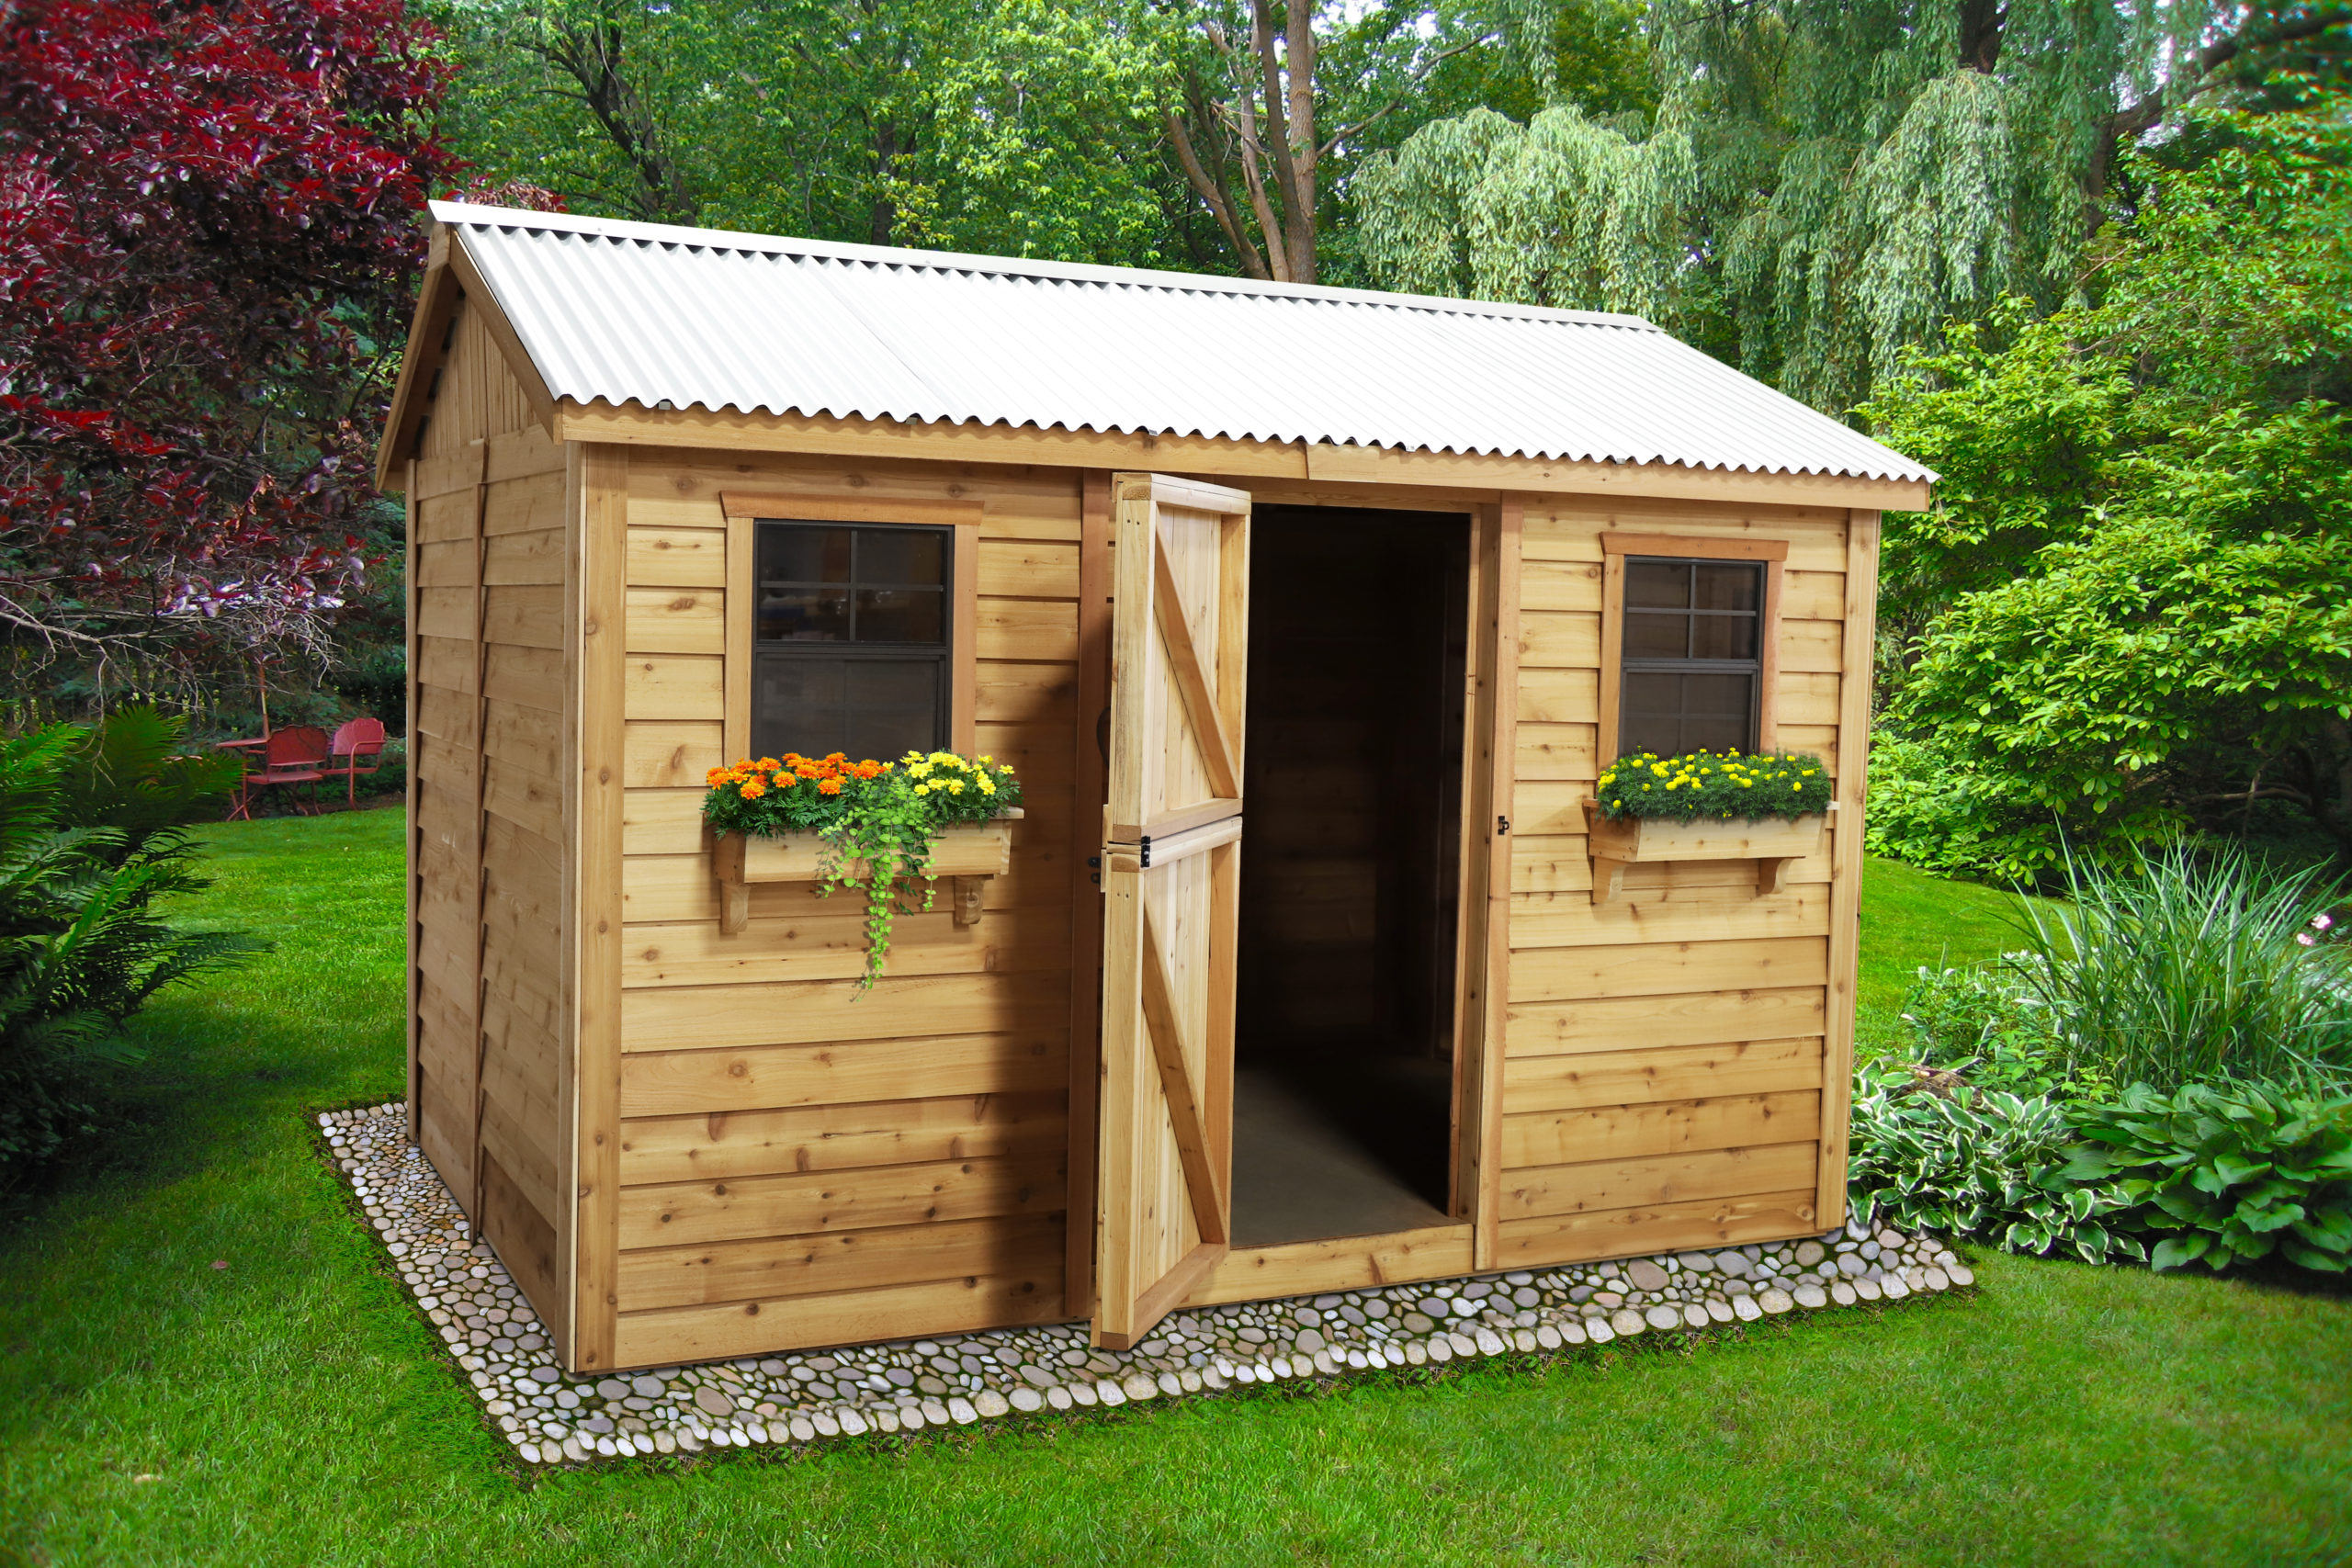 Large Shed for Storage   12x8 - Outdoor Living Today on Outdoor Living Today Cabana id=11336